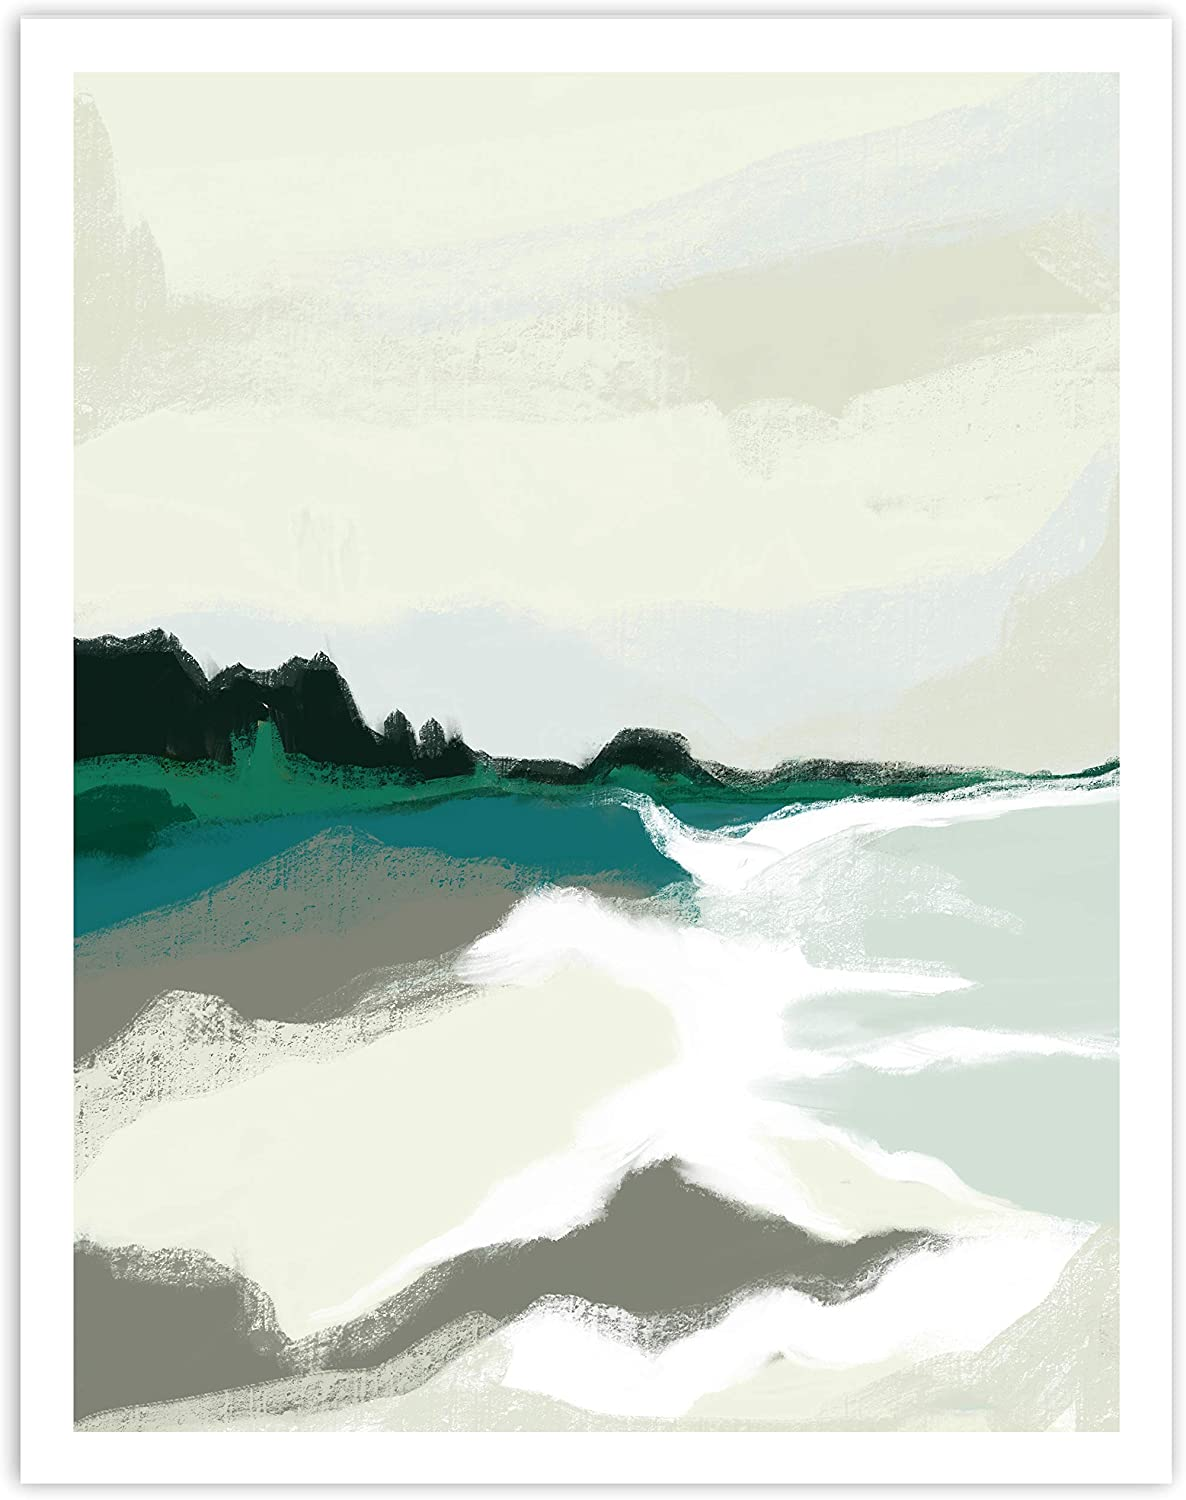 Printsmo, Blue and Cream Modern Abstract Landscape Art Print, Minimalist Art Prints for Home Decor, Boho Style Wall Art Poster, Neutral Bohemian Decor, 11x14 Inches, Unframed